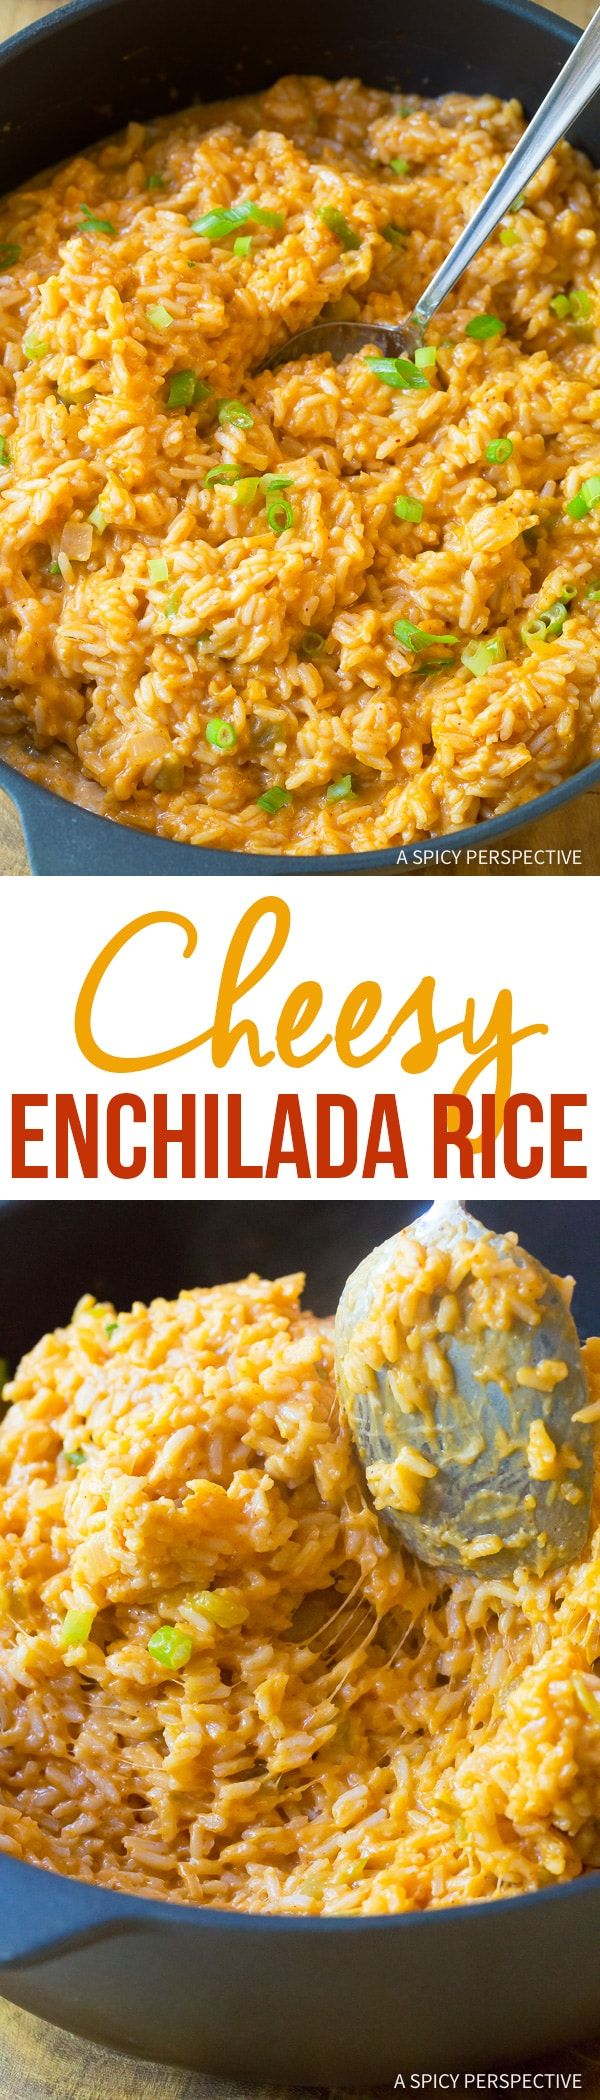 Cheesy Enchilada Rice makes a comforting side dish for grilled chicken and steak!